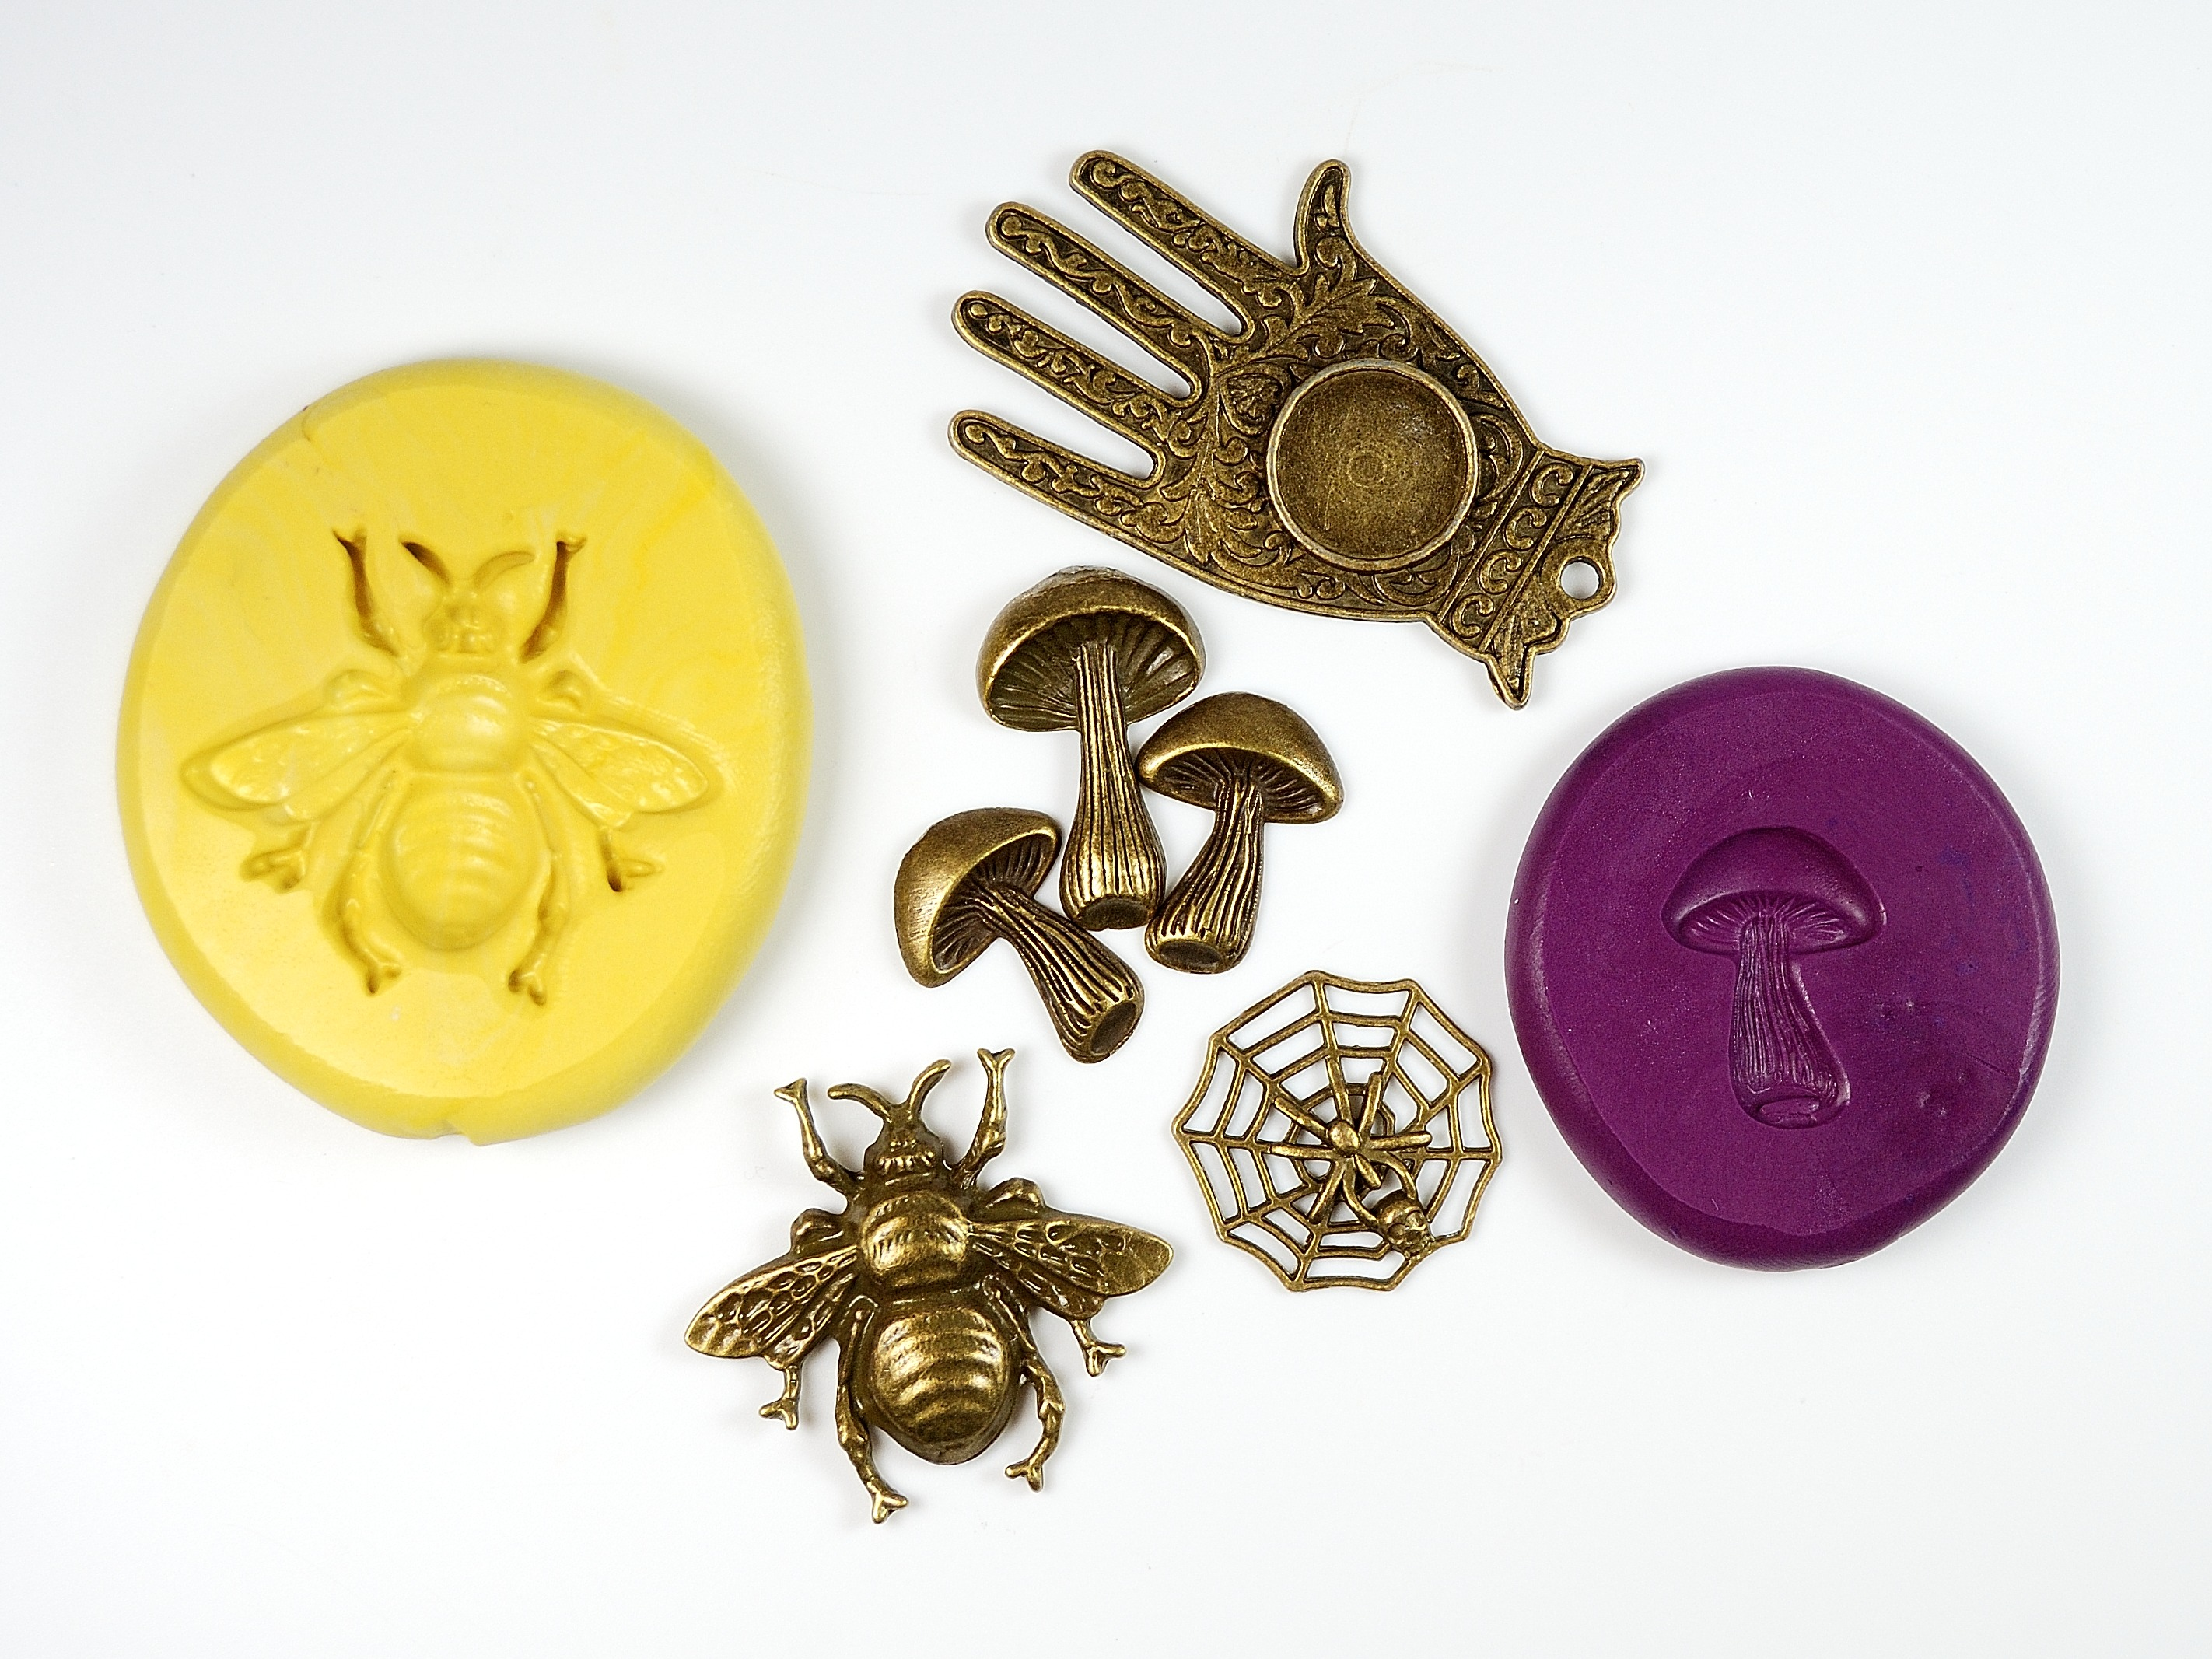 How to Make Silicone Molds from Charms